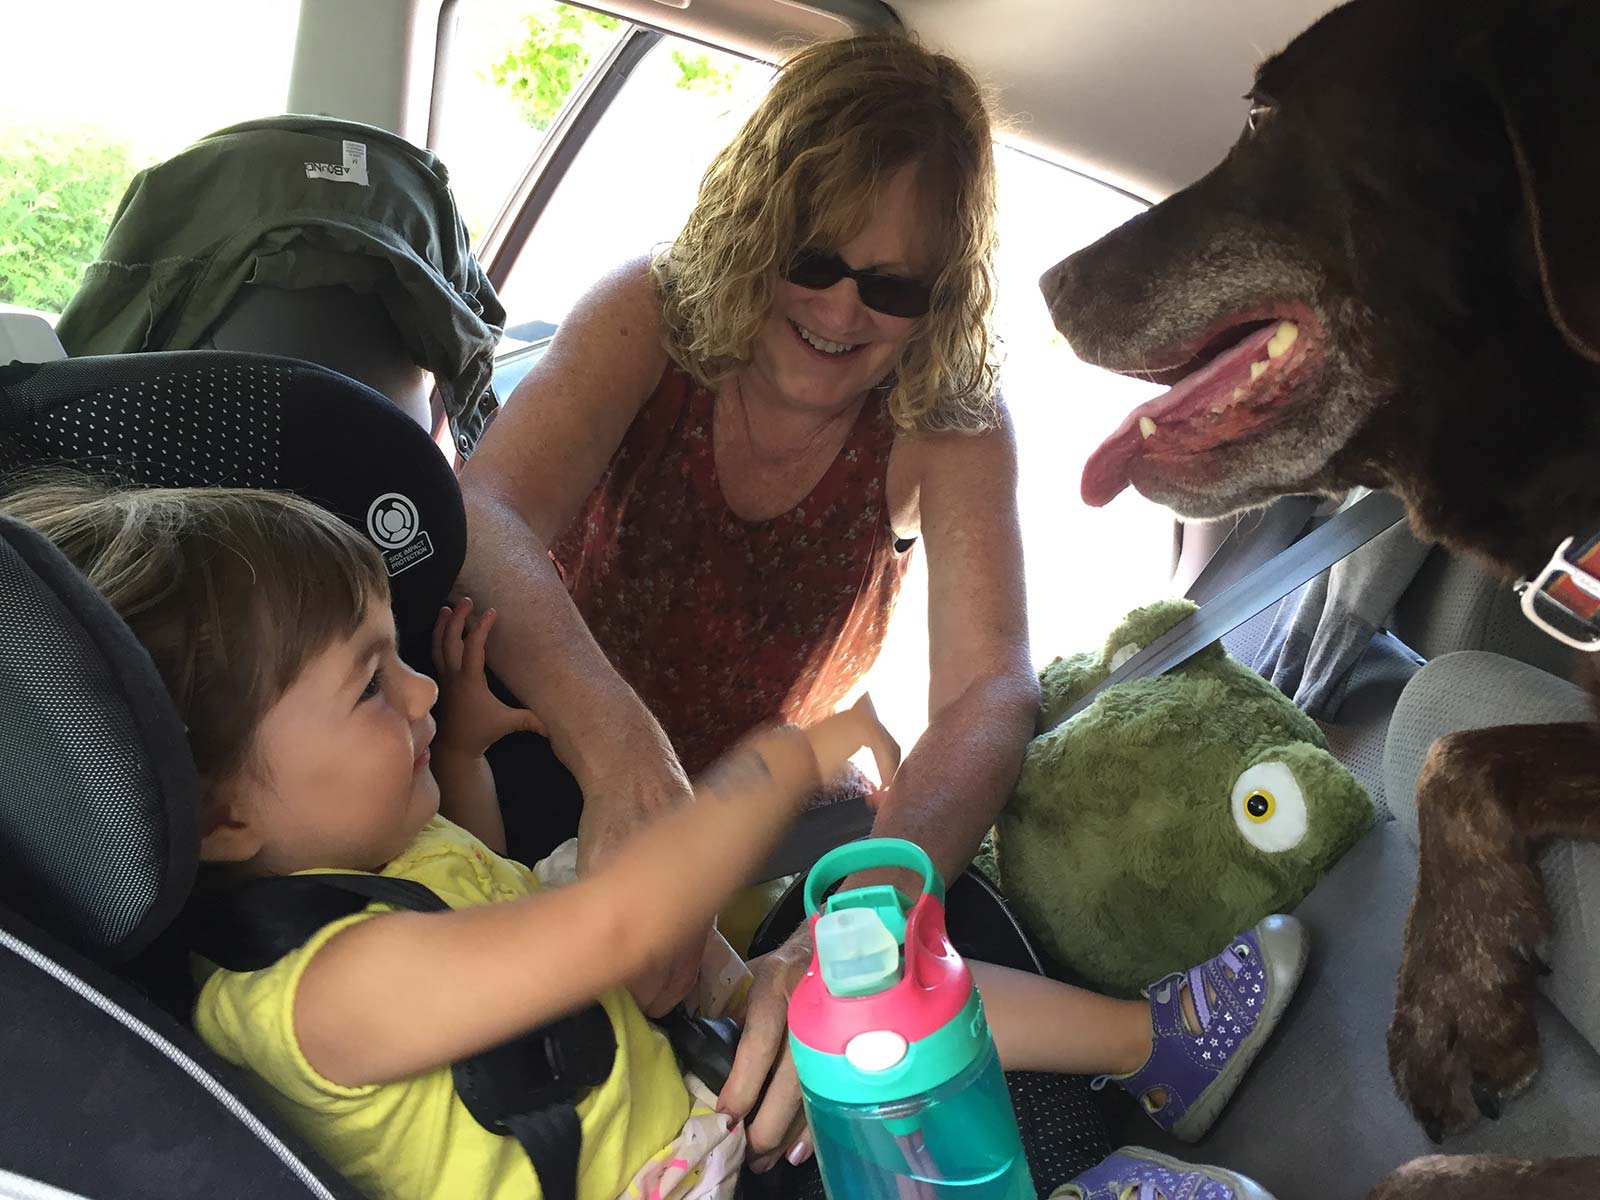 Nina, Launie and Neko getting ready in the car for a family outing